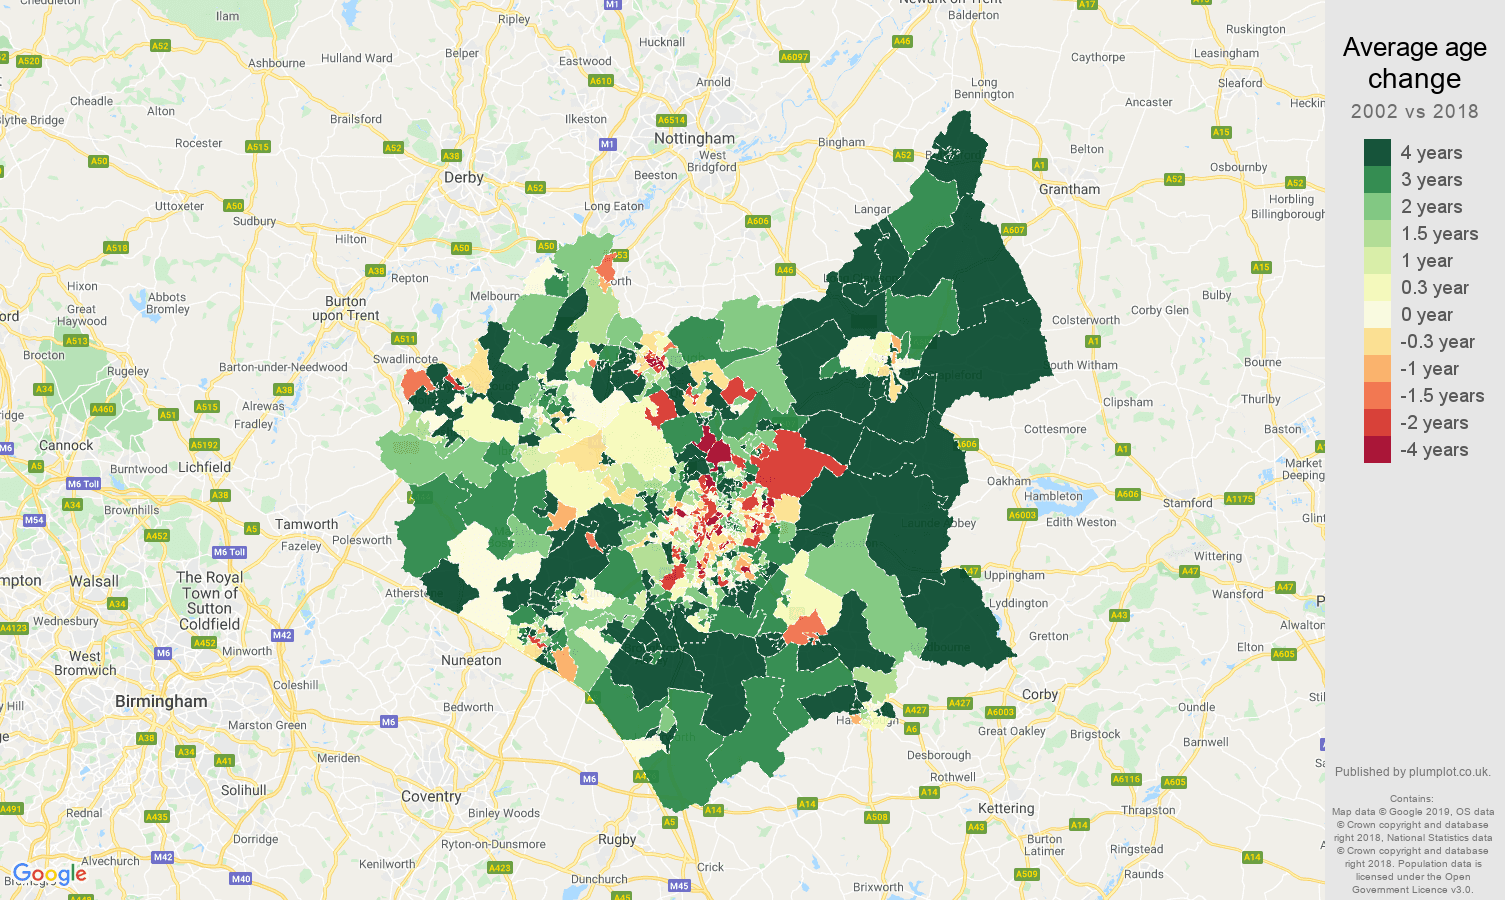 Leicestershire average age change map